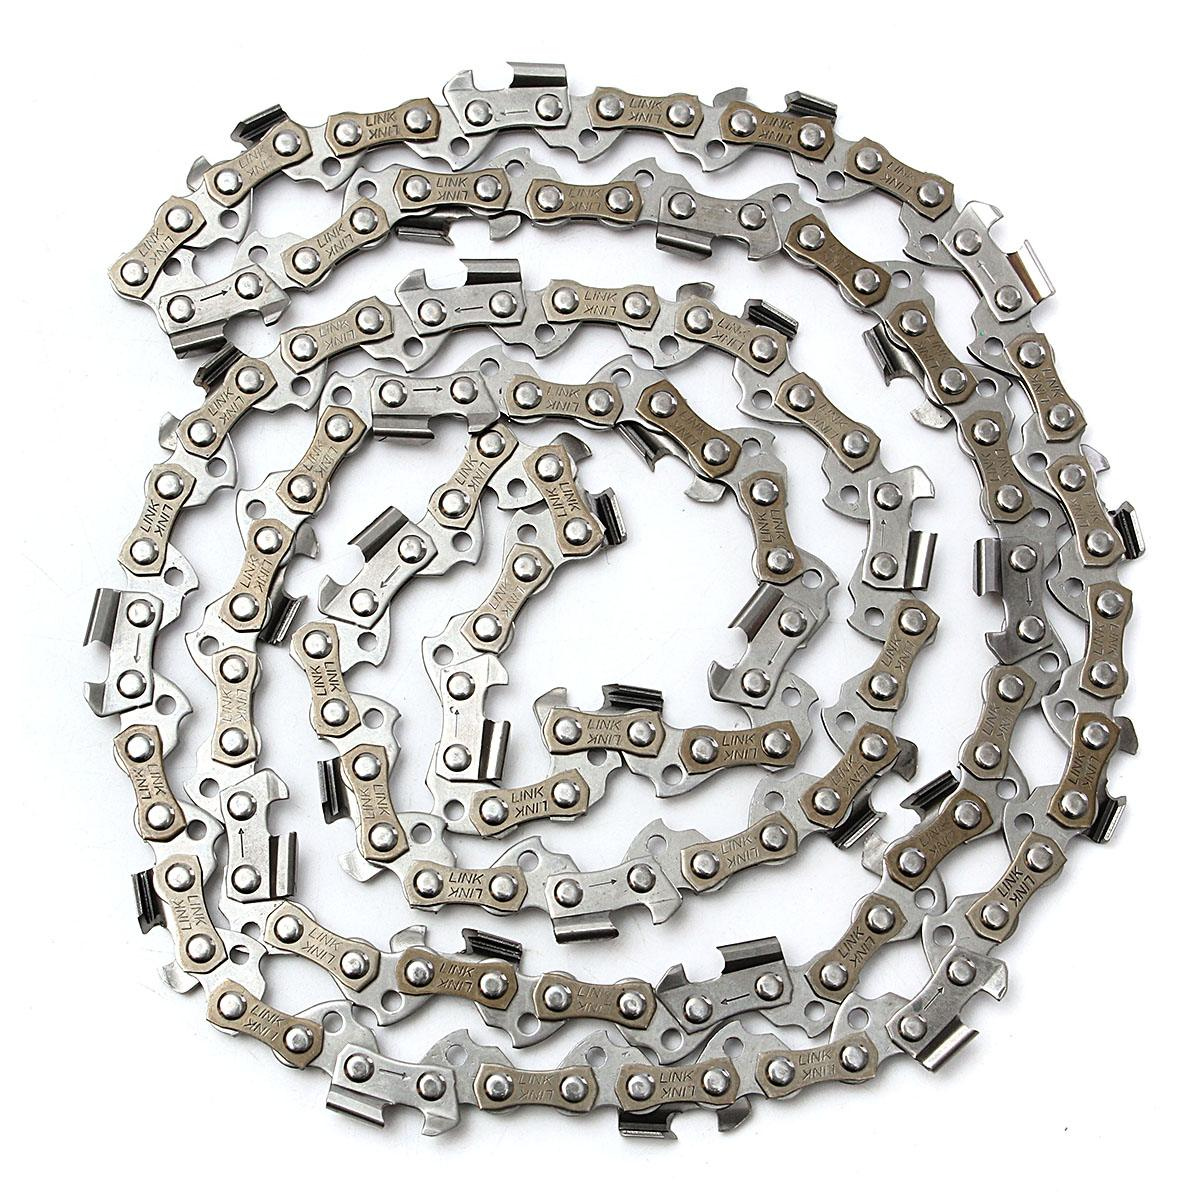 1PC 4 Types 12/16/18/20 Chainsaw Saw Chain Blade 3/8LP Chain Accessory Part1PC 4 Types 12/16/18/20 Chainsaw Saw Chain Blade 3/8LP Chain Accessory Part